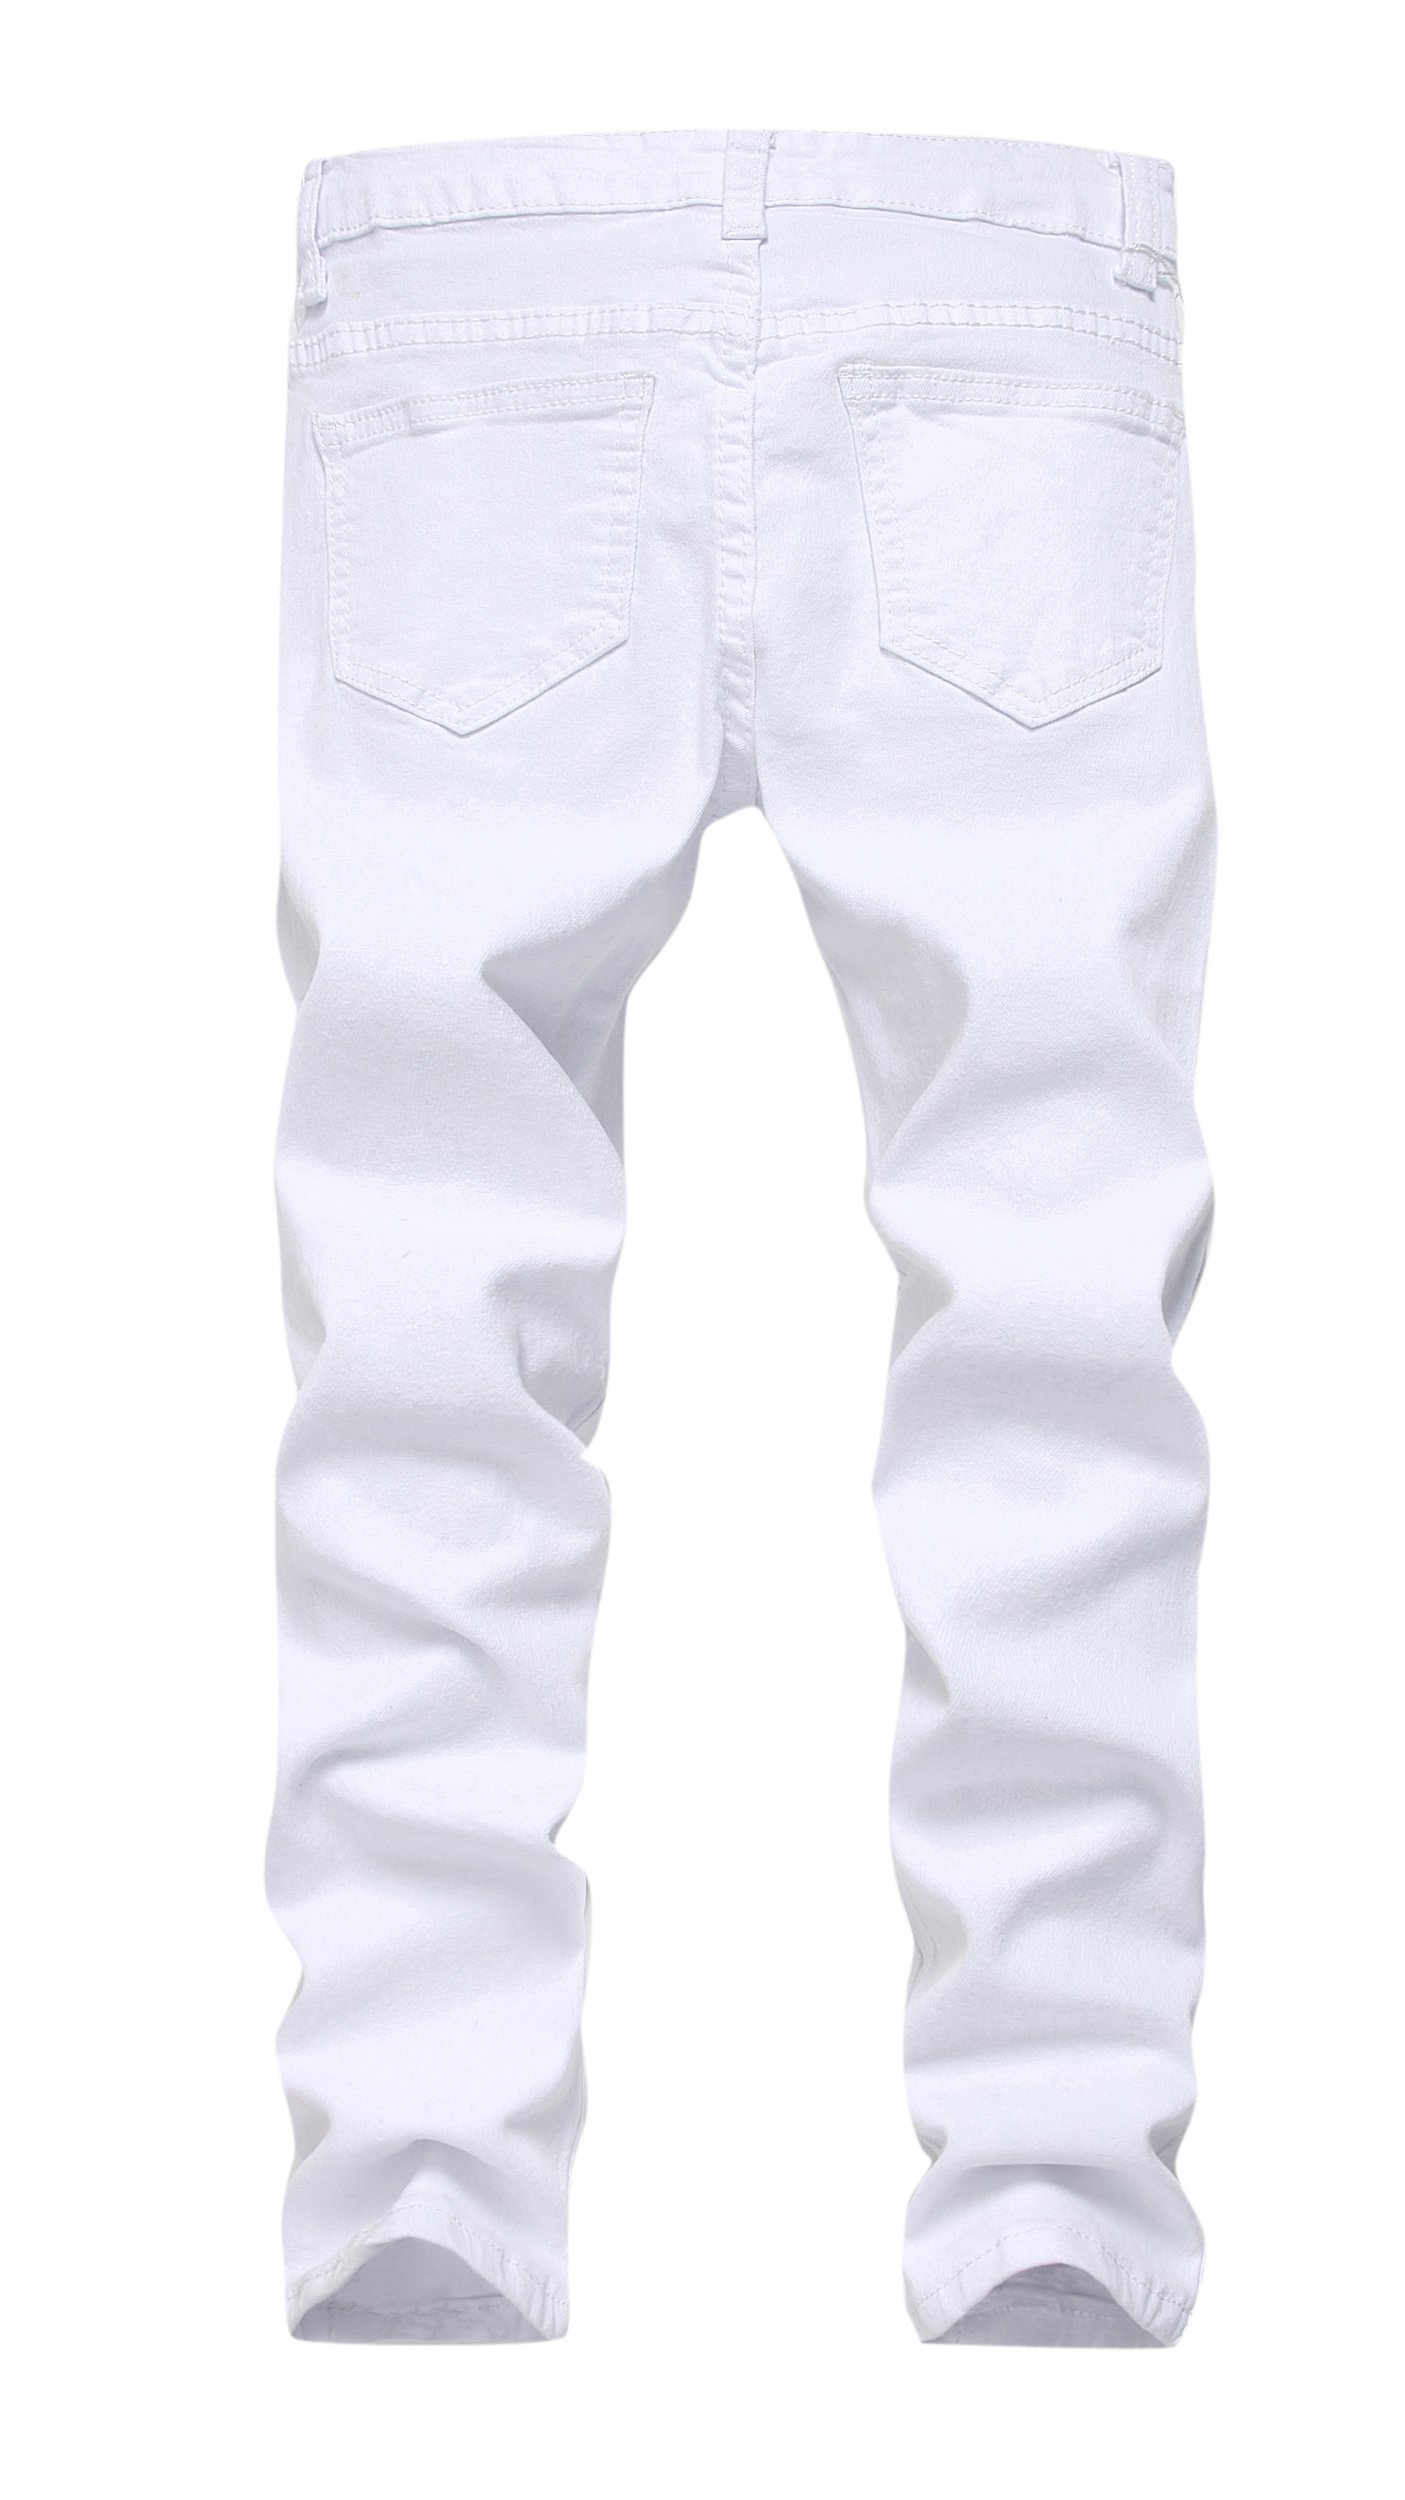 bb1ed4bf8c59 FREDD MARSHALL Boy's White Skinny Fit Ripped Destroyed Distressed Stretch  Slim Jeans Pants